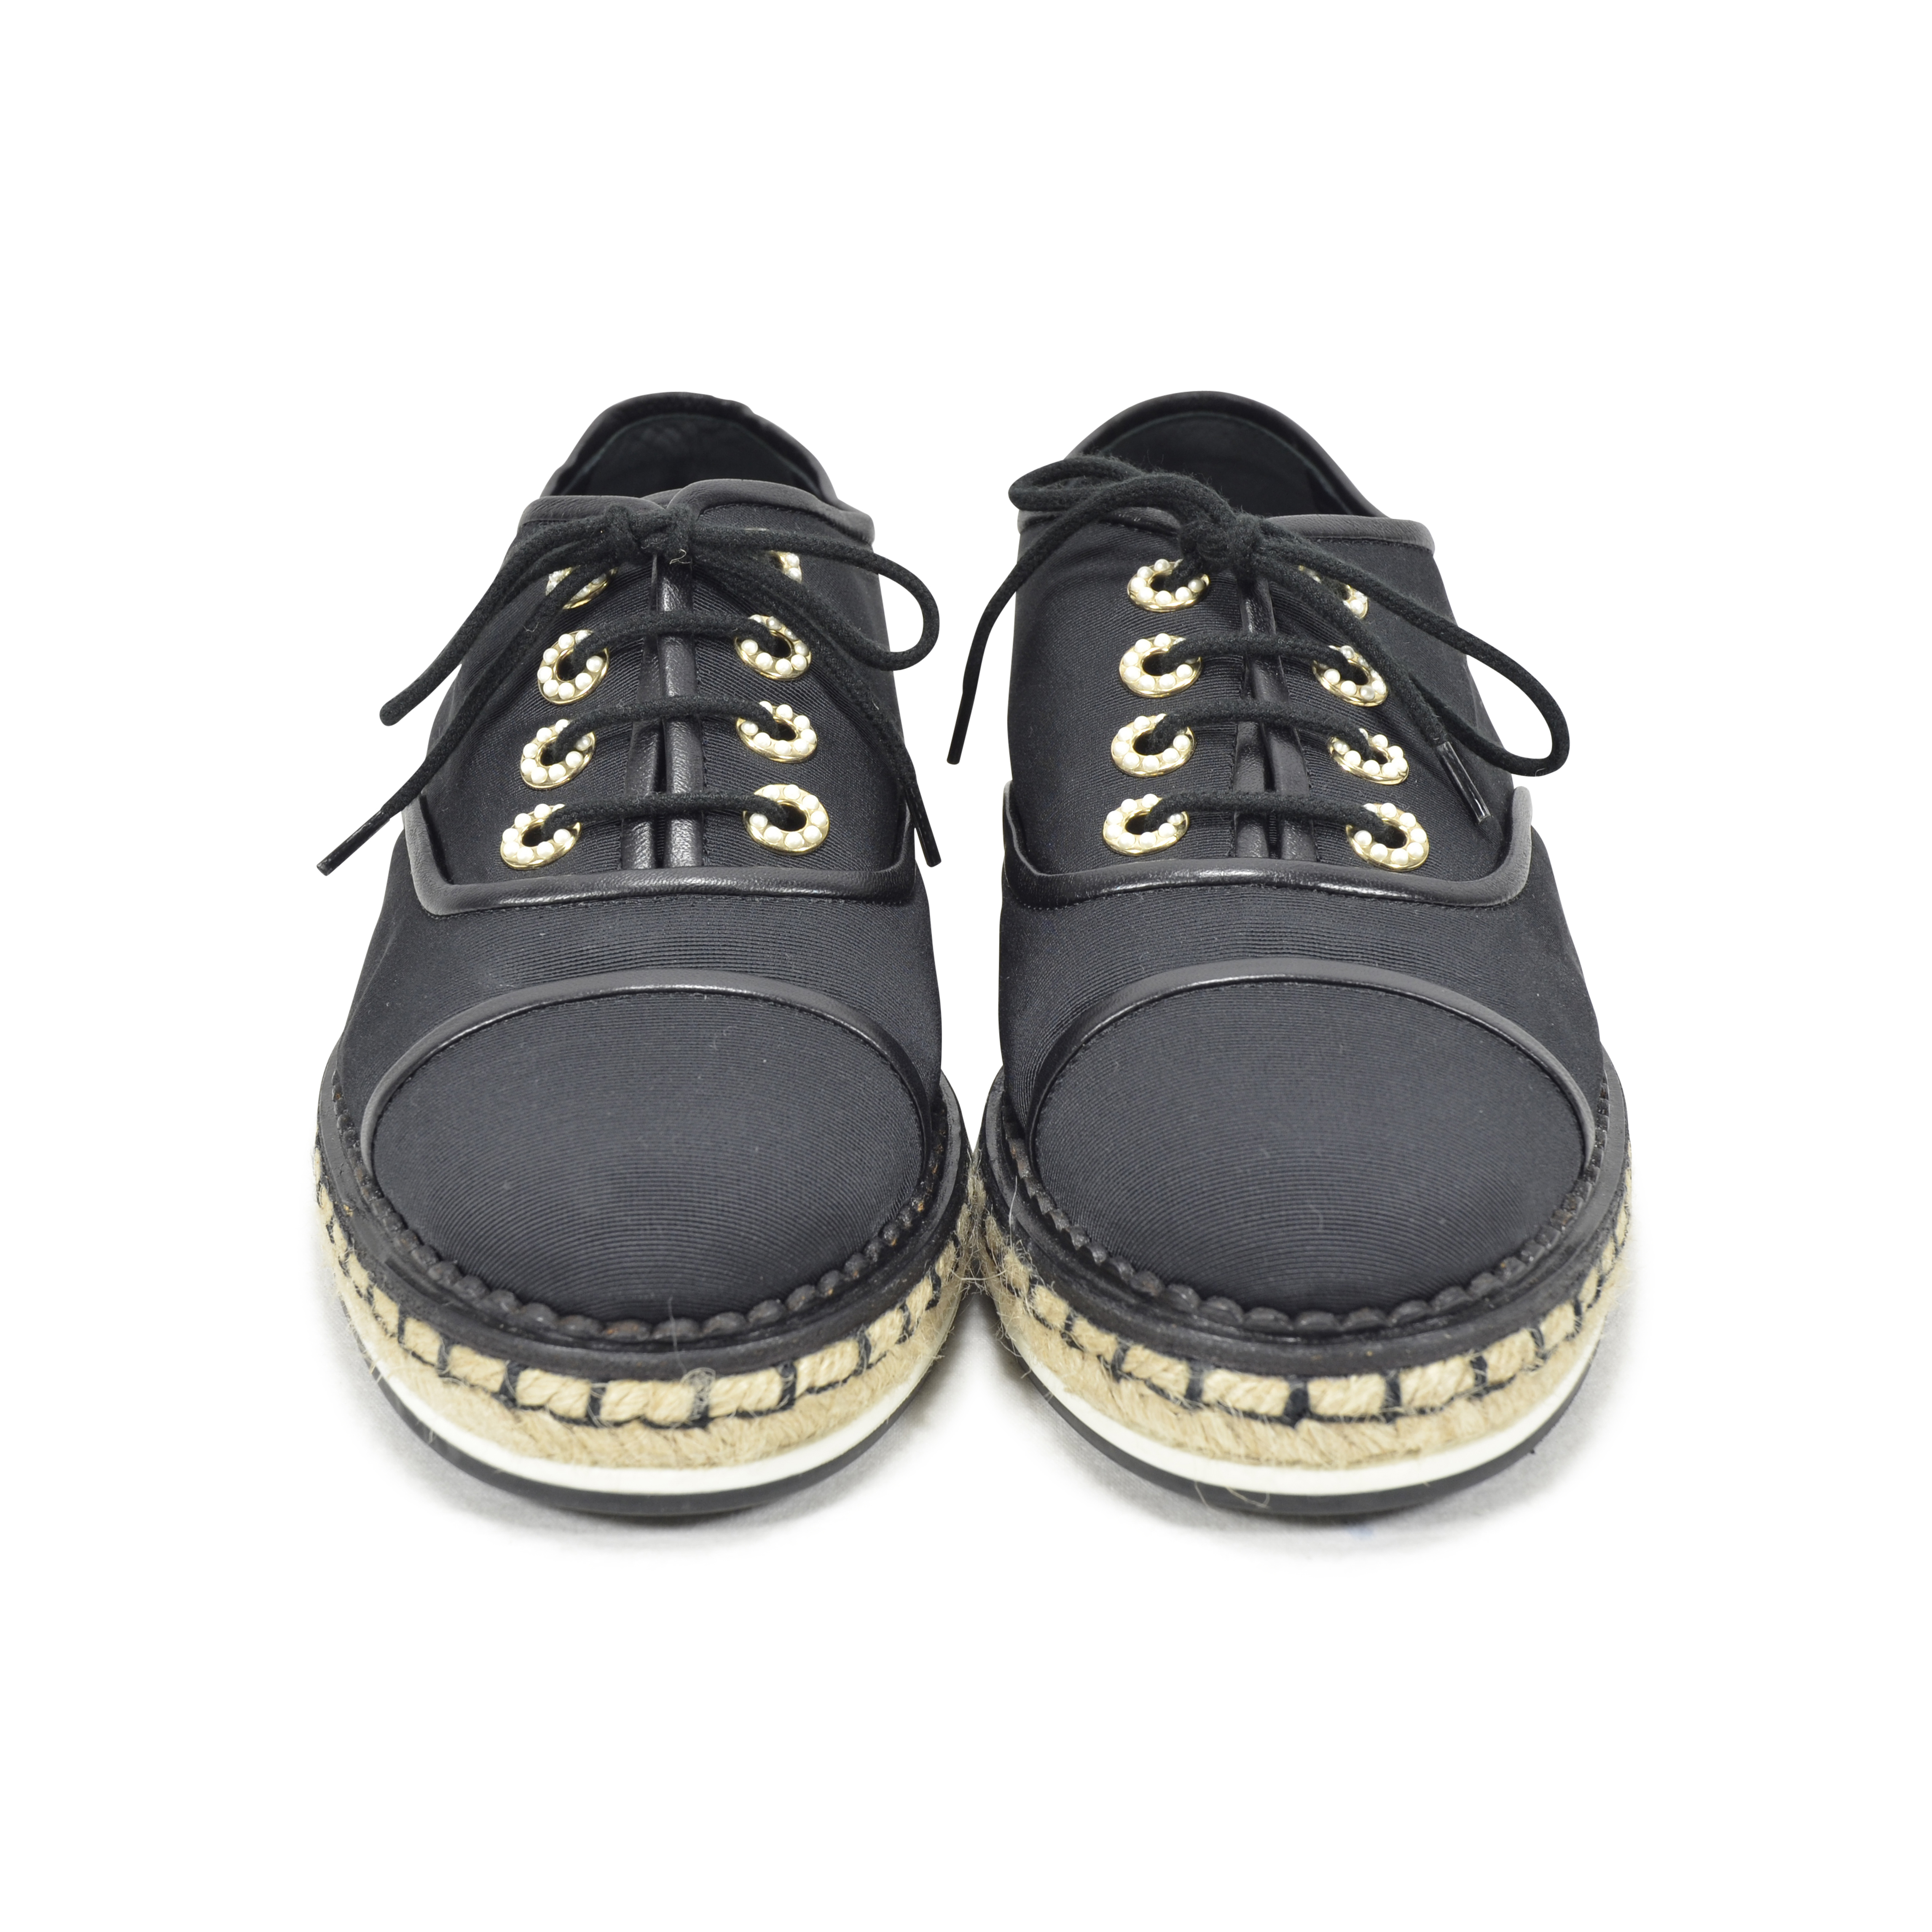 30a620743 Authentic Second Hand Chanel Lace-Up Espadrille Canvas Shoes  (PSS-200-00811) - THE FIFTH COLLECTION